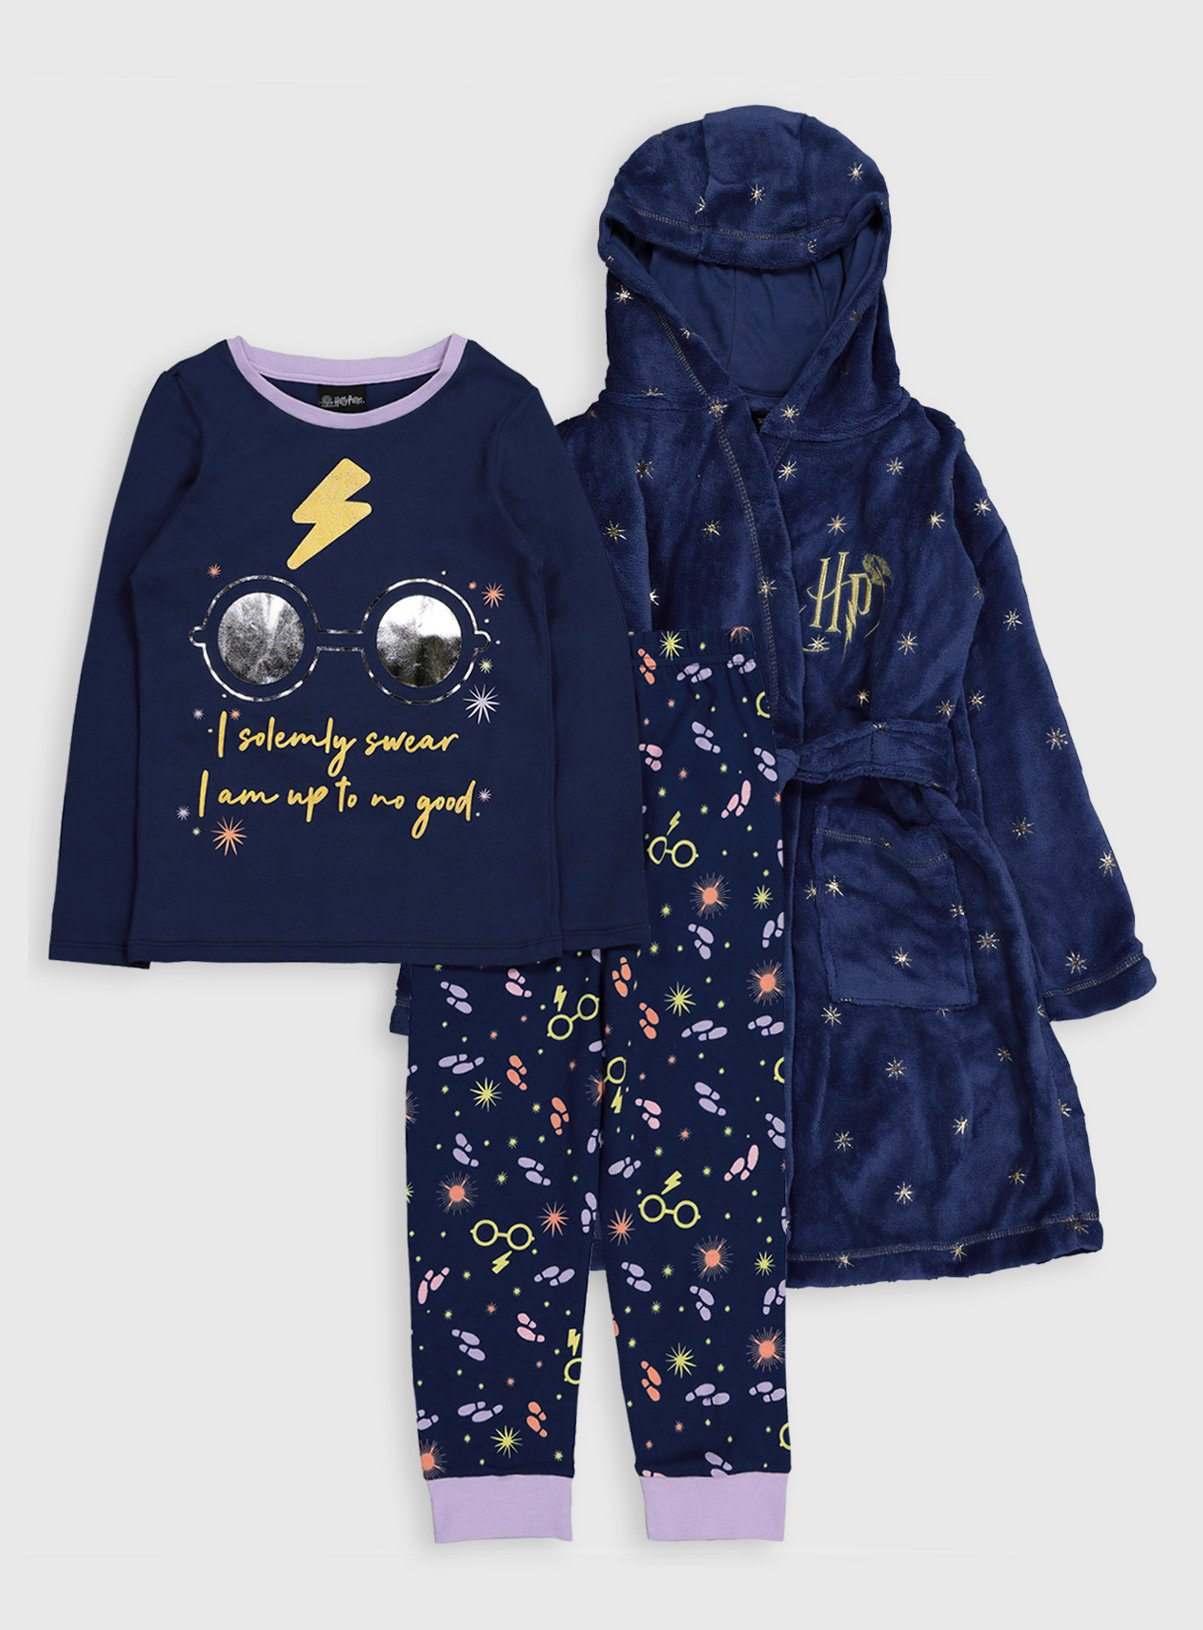 Harry Potter Pyjamas & Dressing Gown - 6-7 years